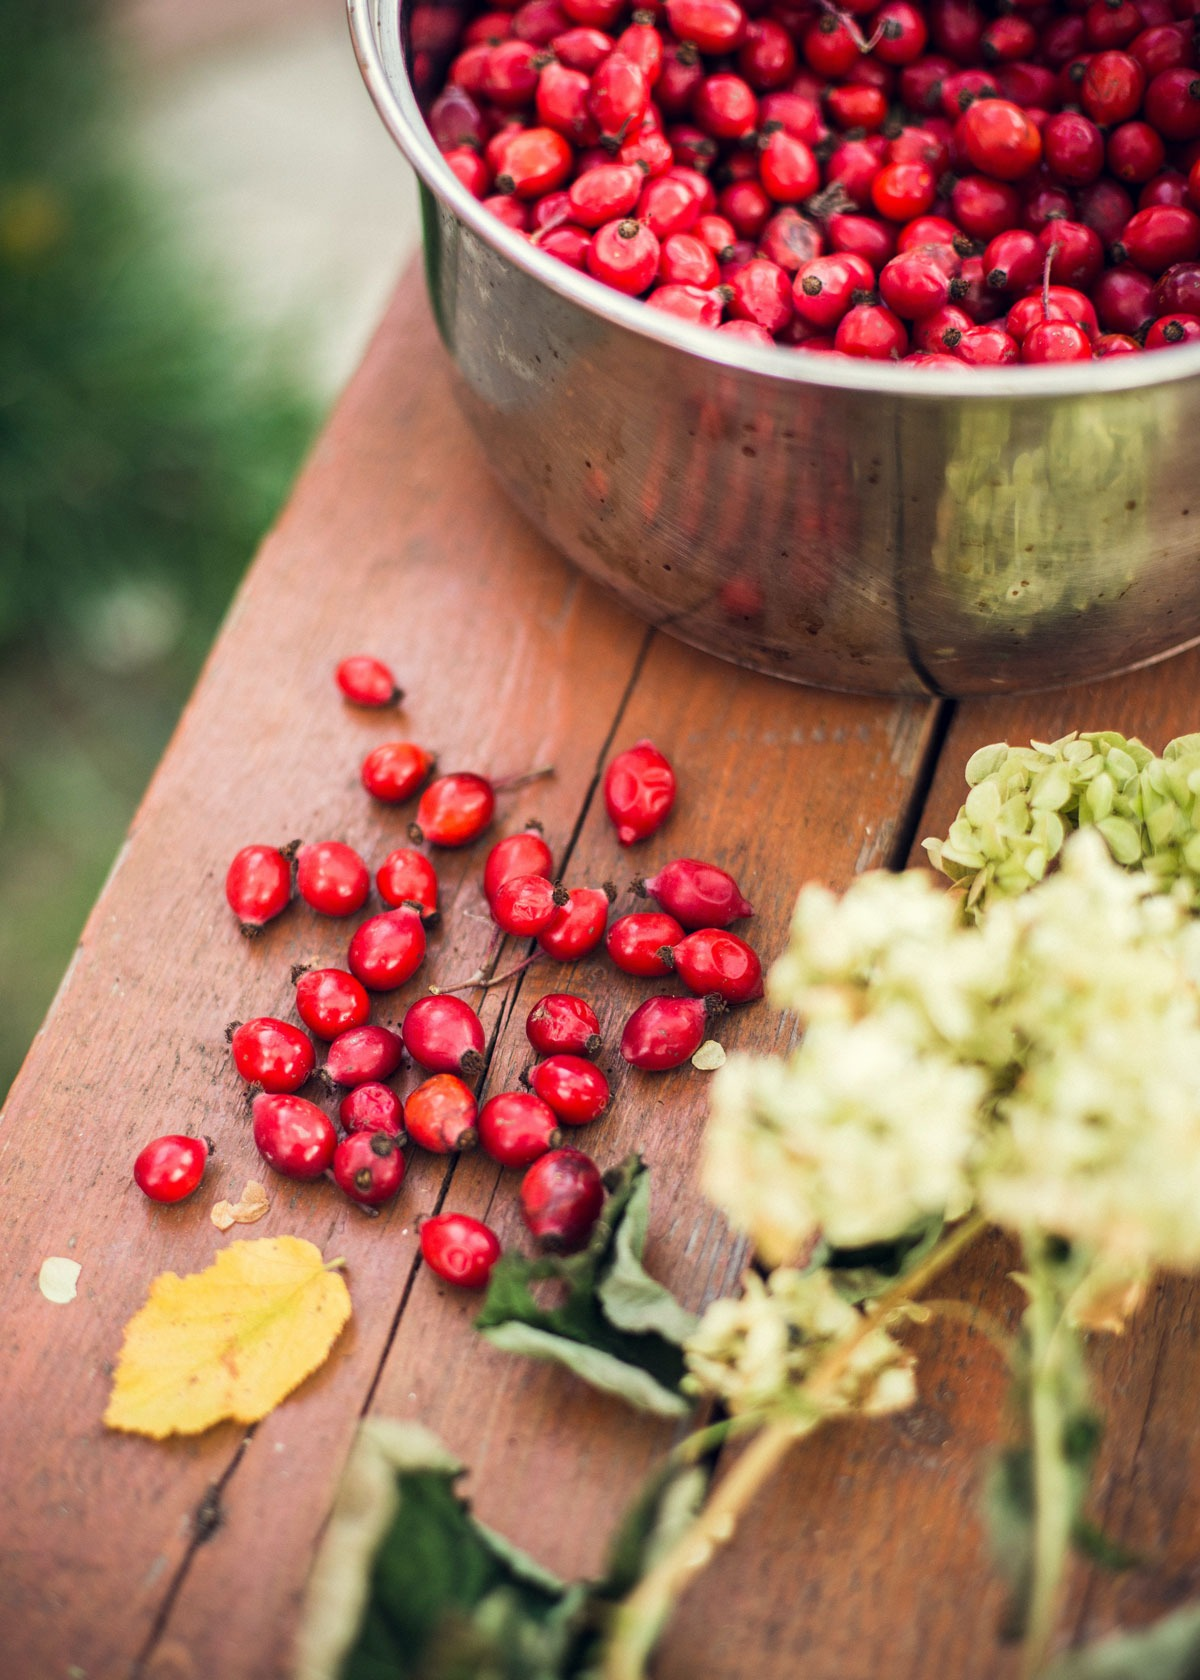 Rosehips are one of the ways you can use vitamin c benefit for the skin